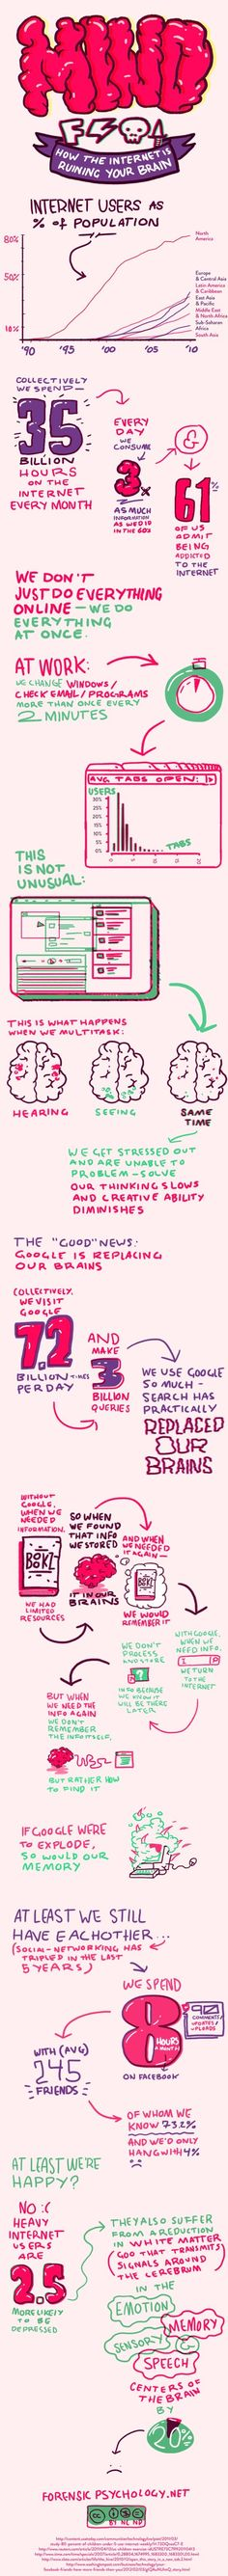 Creative handwriting infographic: How the internet is running your brain